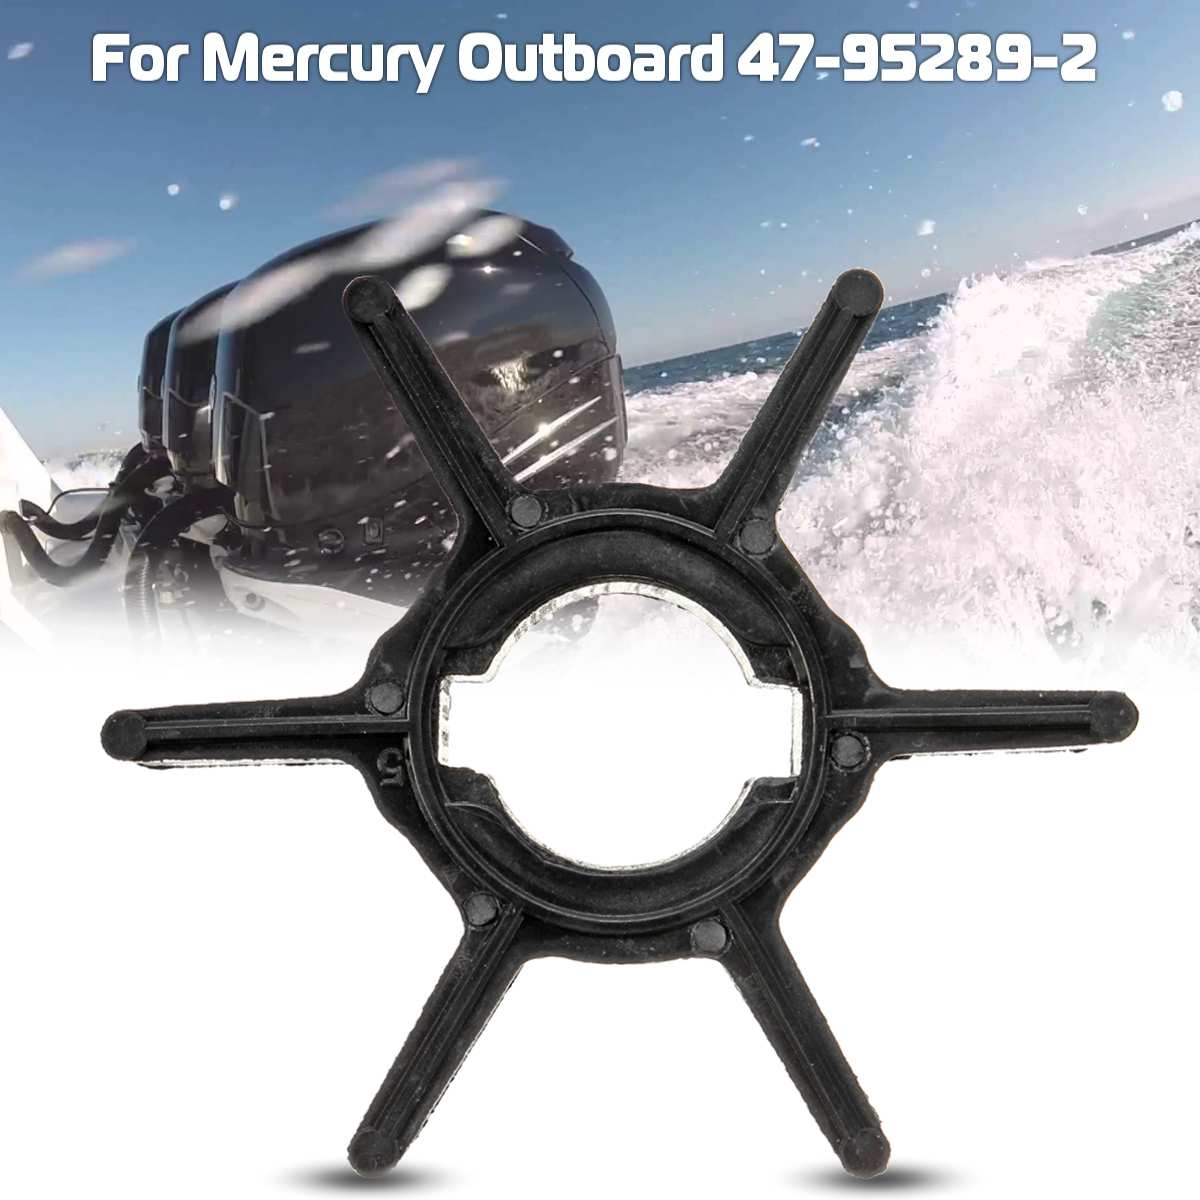 Outboard Motor Replacement 47-952892 Water Pump Impeller For Mercury 2.2-3.3HP 6 Blades Rubber Black Accessories Diameter 43mm